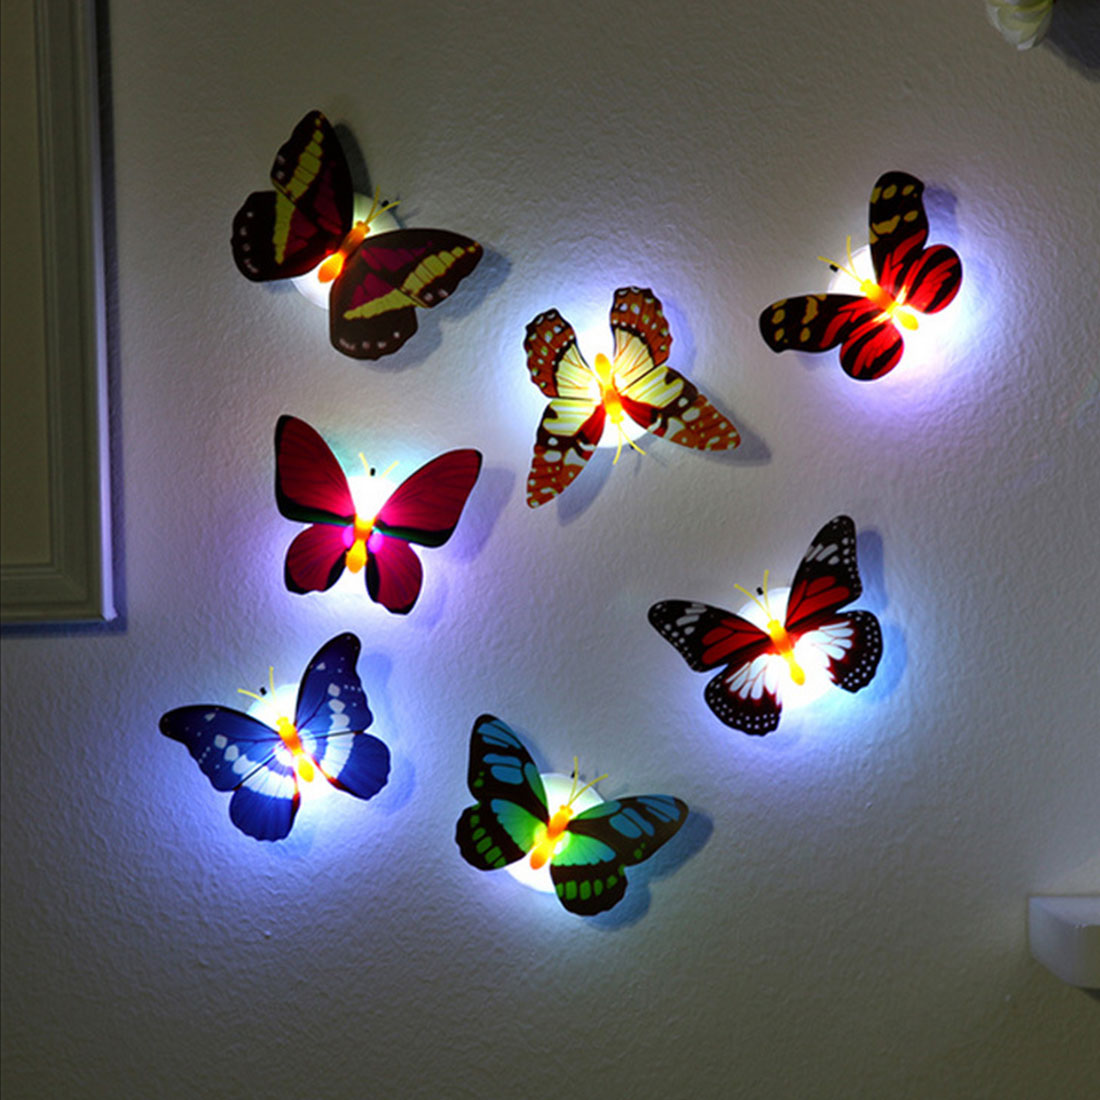 Hot LED Light Night Atmosphere Lamp Colorful Changing Butterfly Indoor Light With Suction Pad Home Party Desk Wall Decor